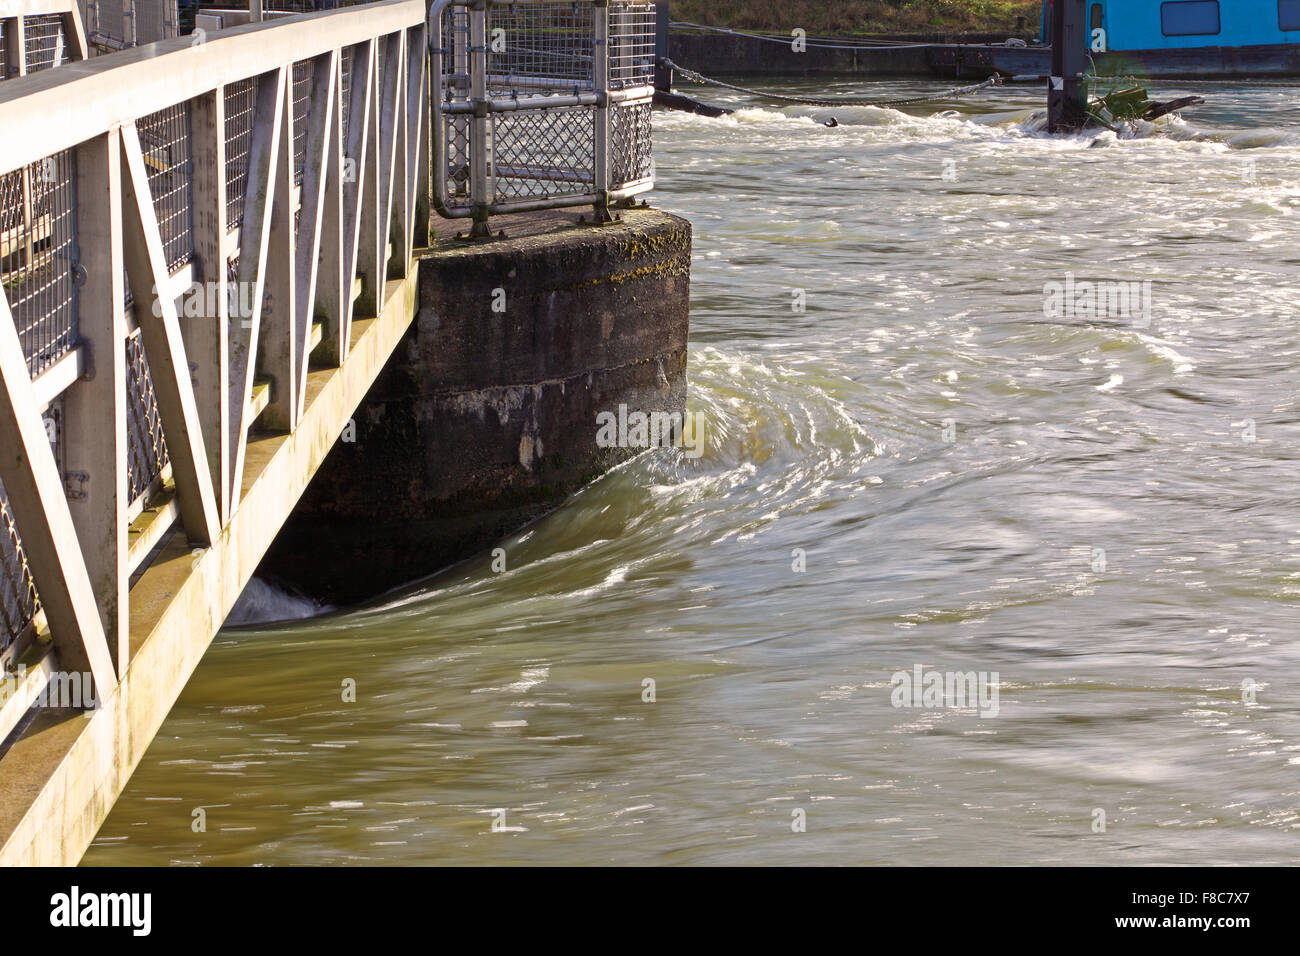 Fast rushing water coursing around the pillar of a weir showing just how fast it is flowing in the swollen river. - Stock Image